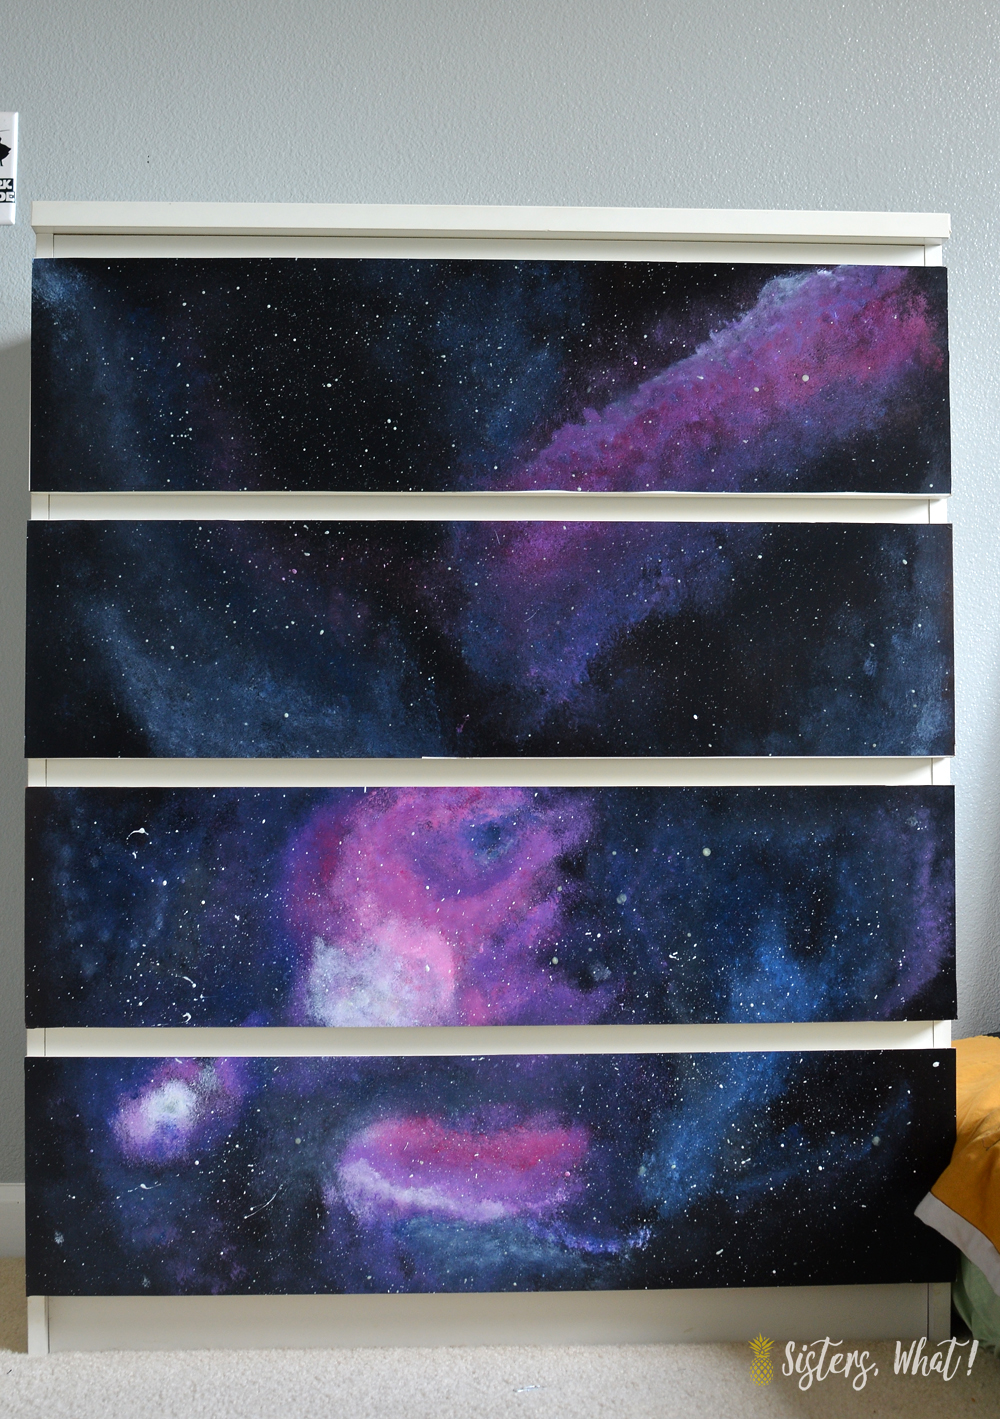 Ikea Malm Dresser Hack with contact paper and some paint to make a galaxy dresser for a space star wars room!